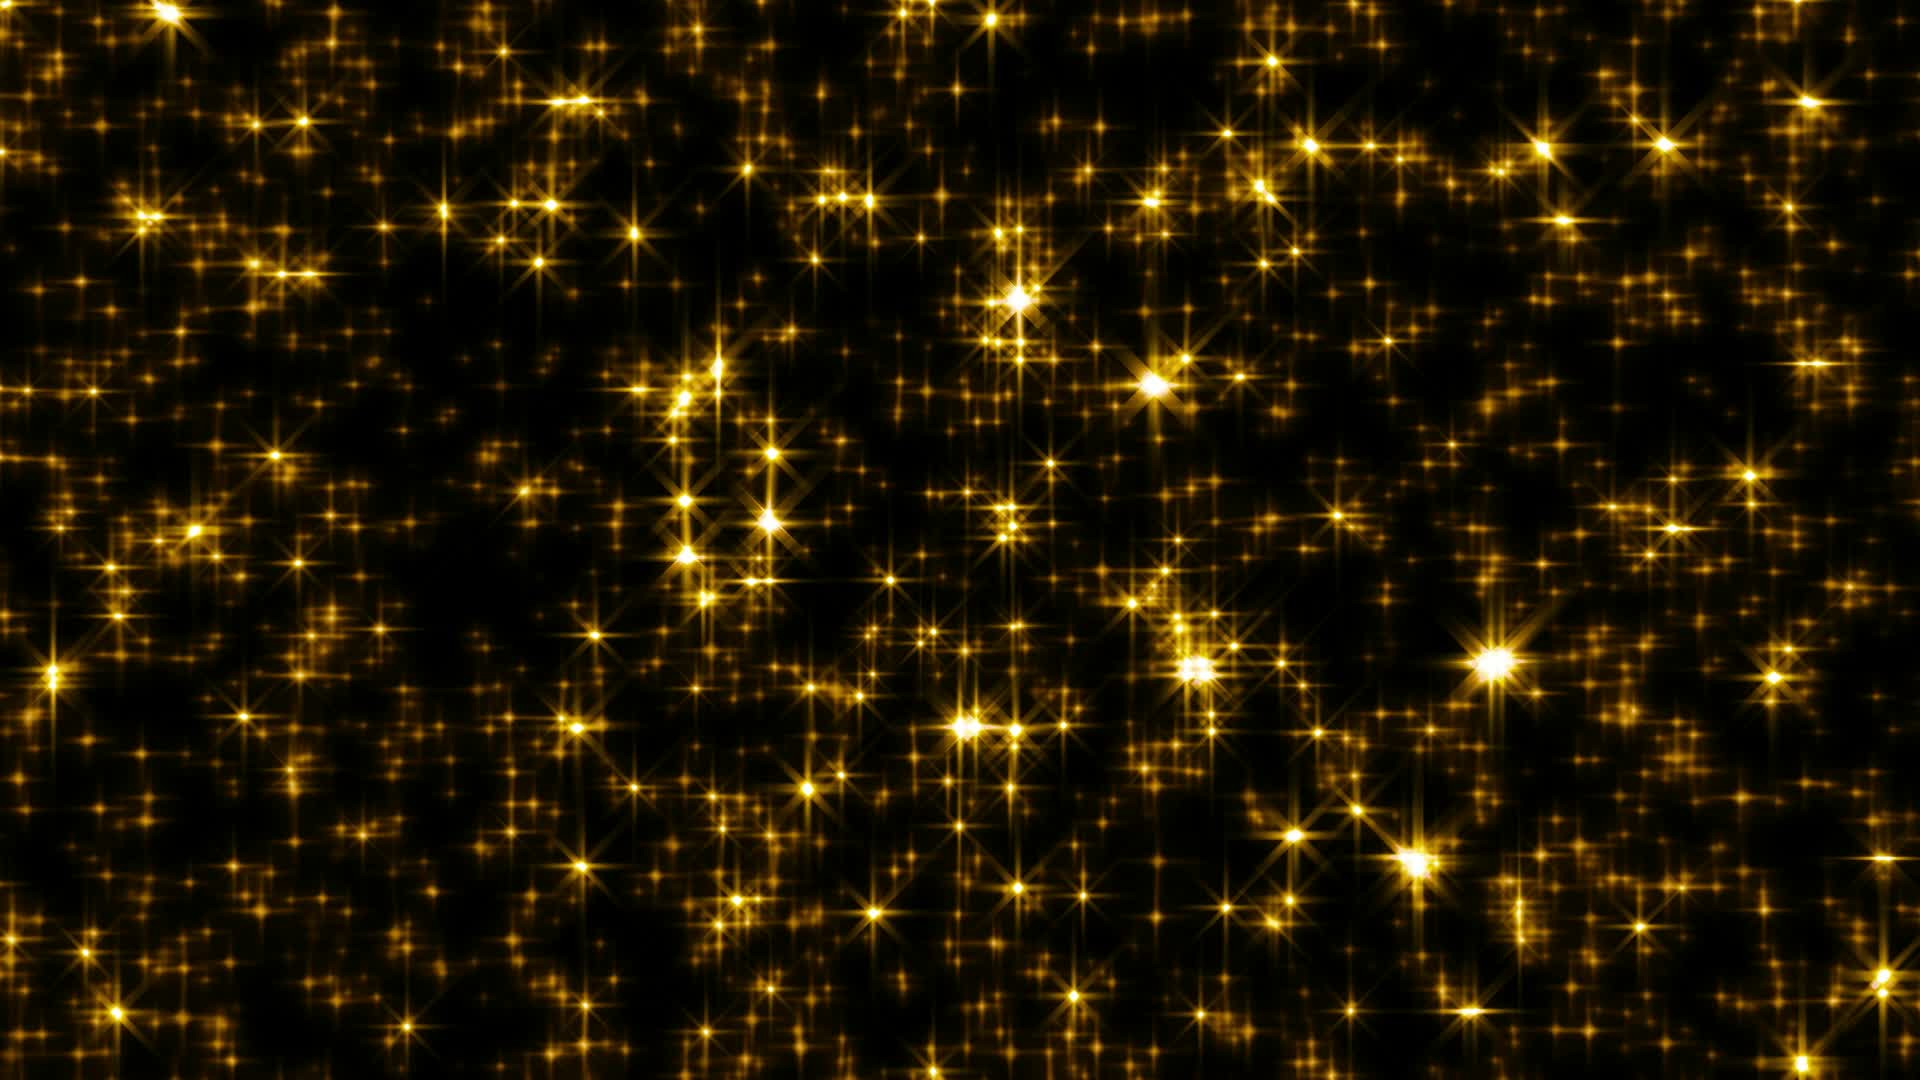 black and gold background 26 free wallpaper